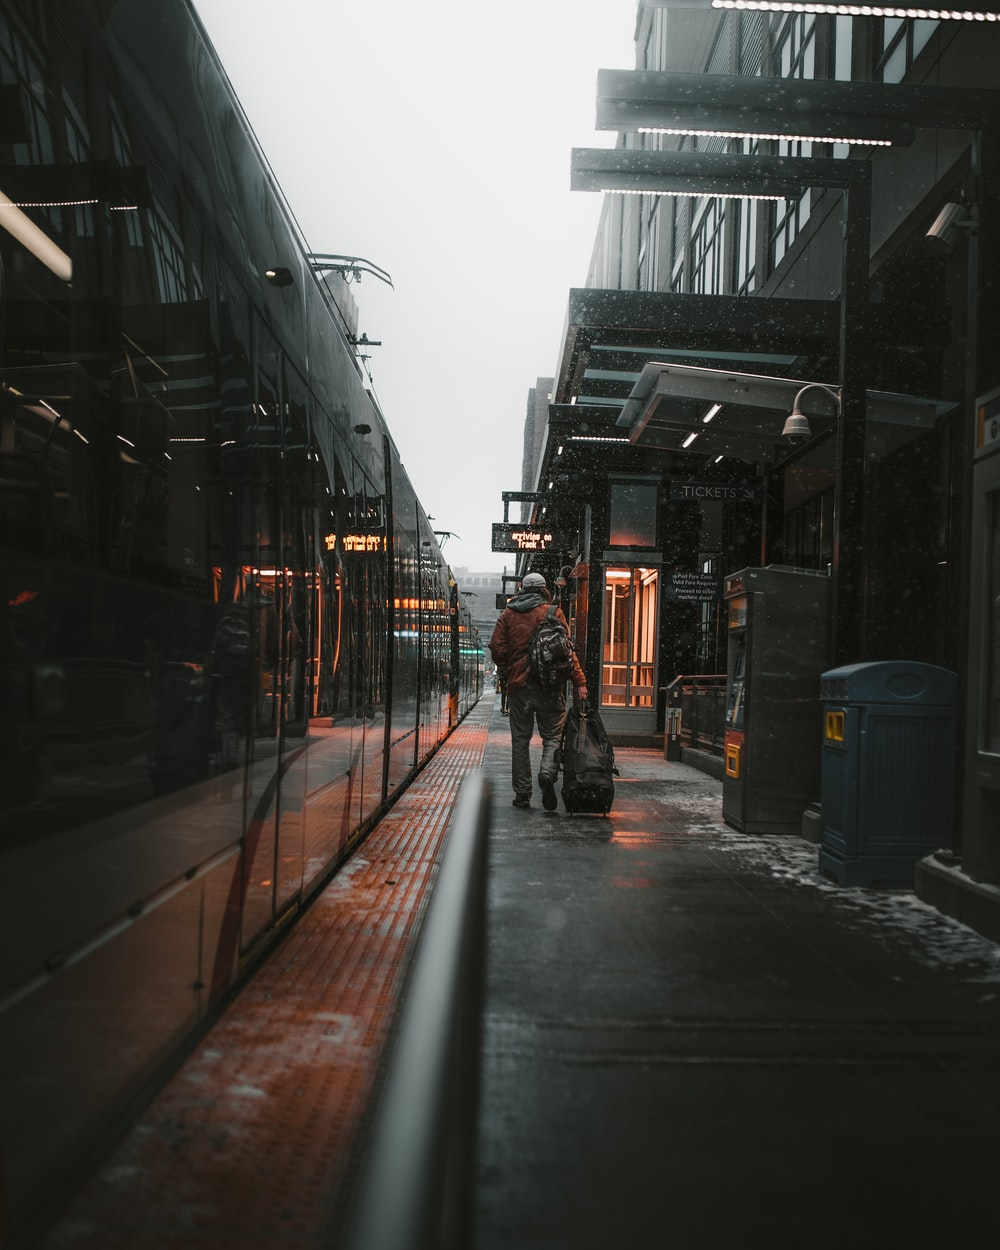 person walking with luggage beside train during daytime